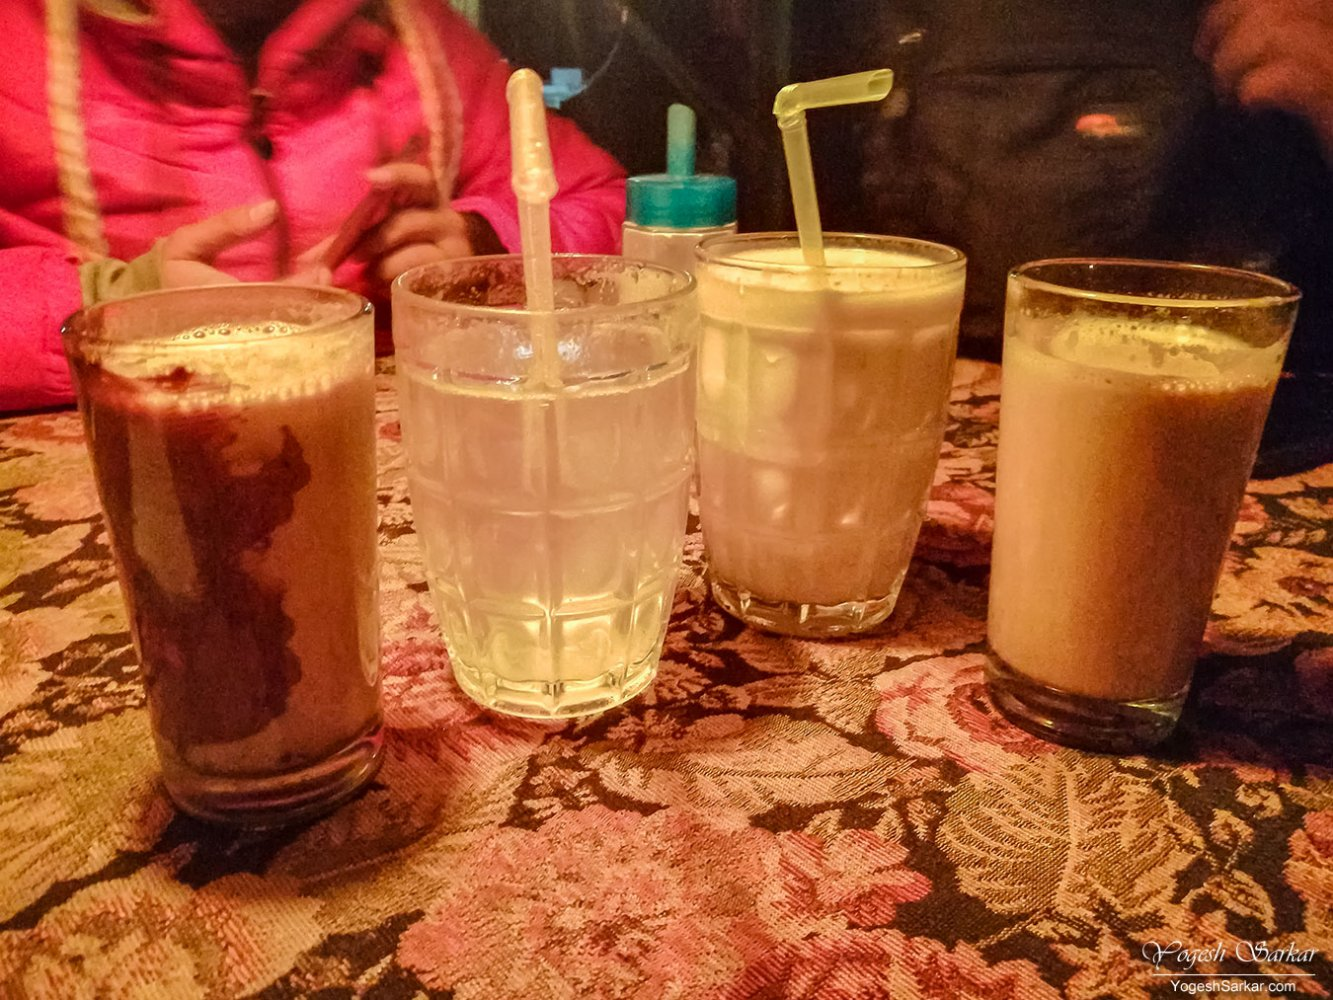 15-drinks-at-evergreen-cafe.jpg